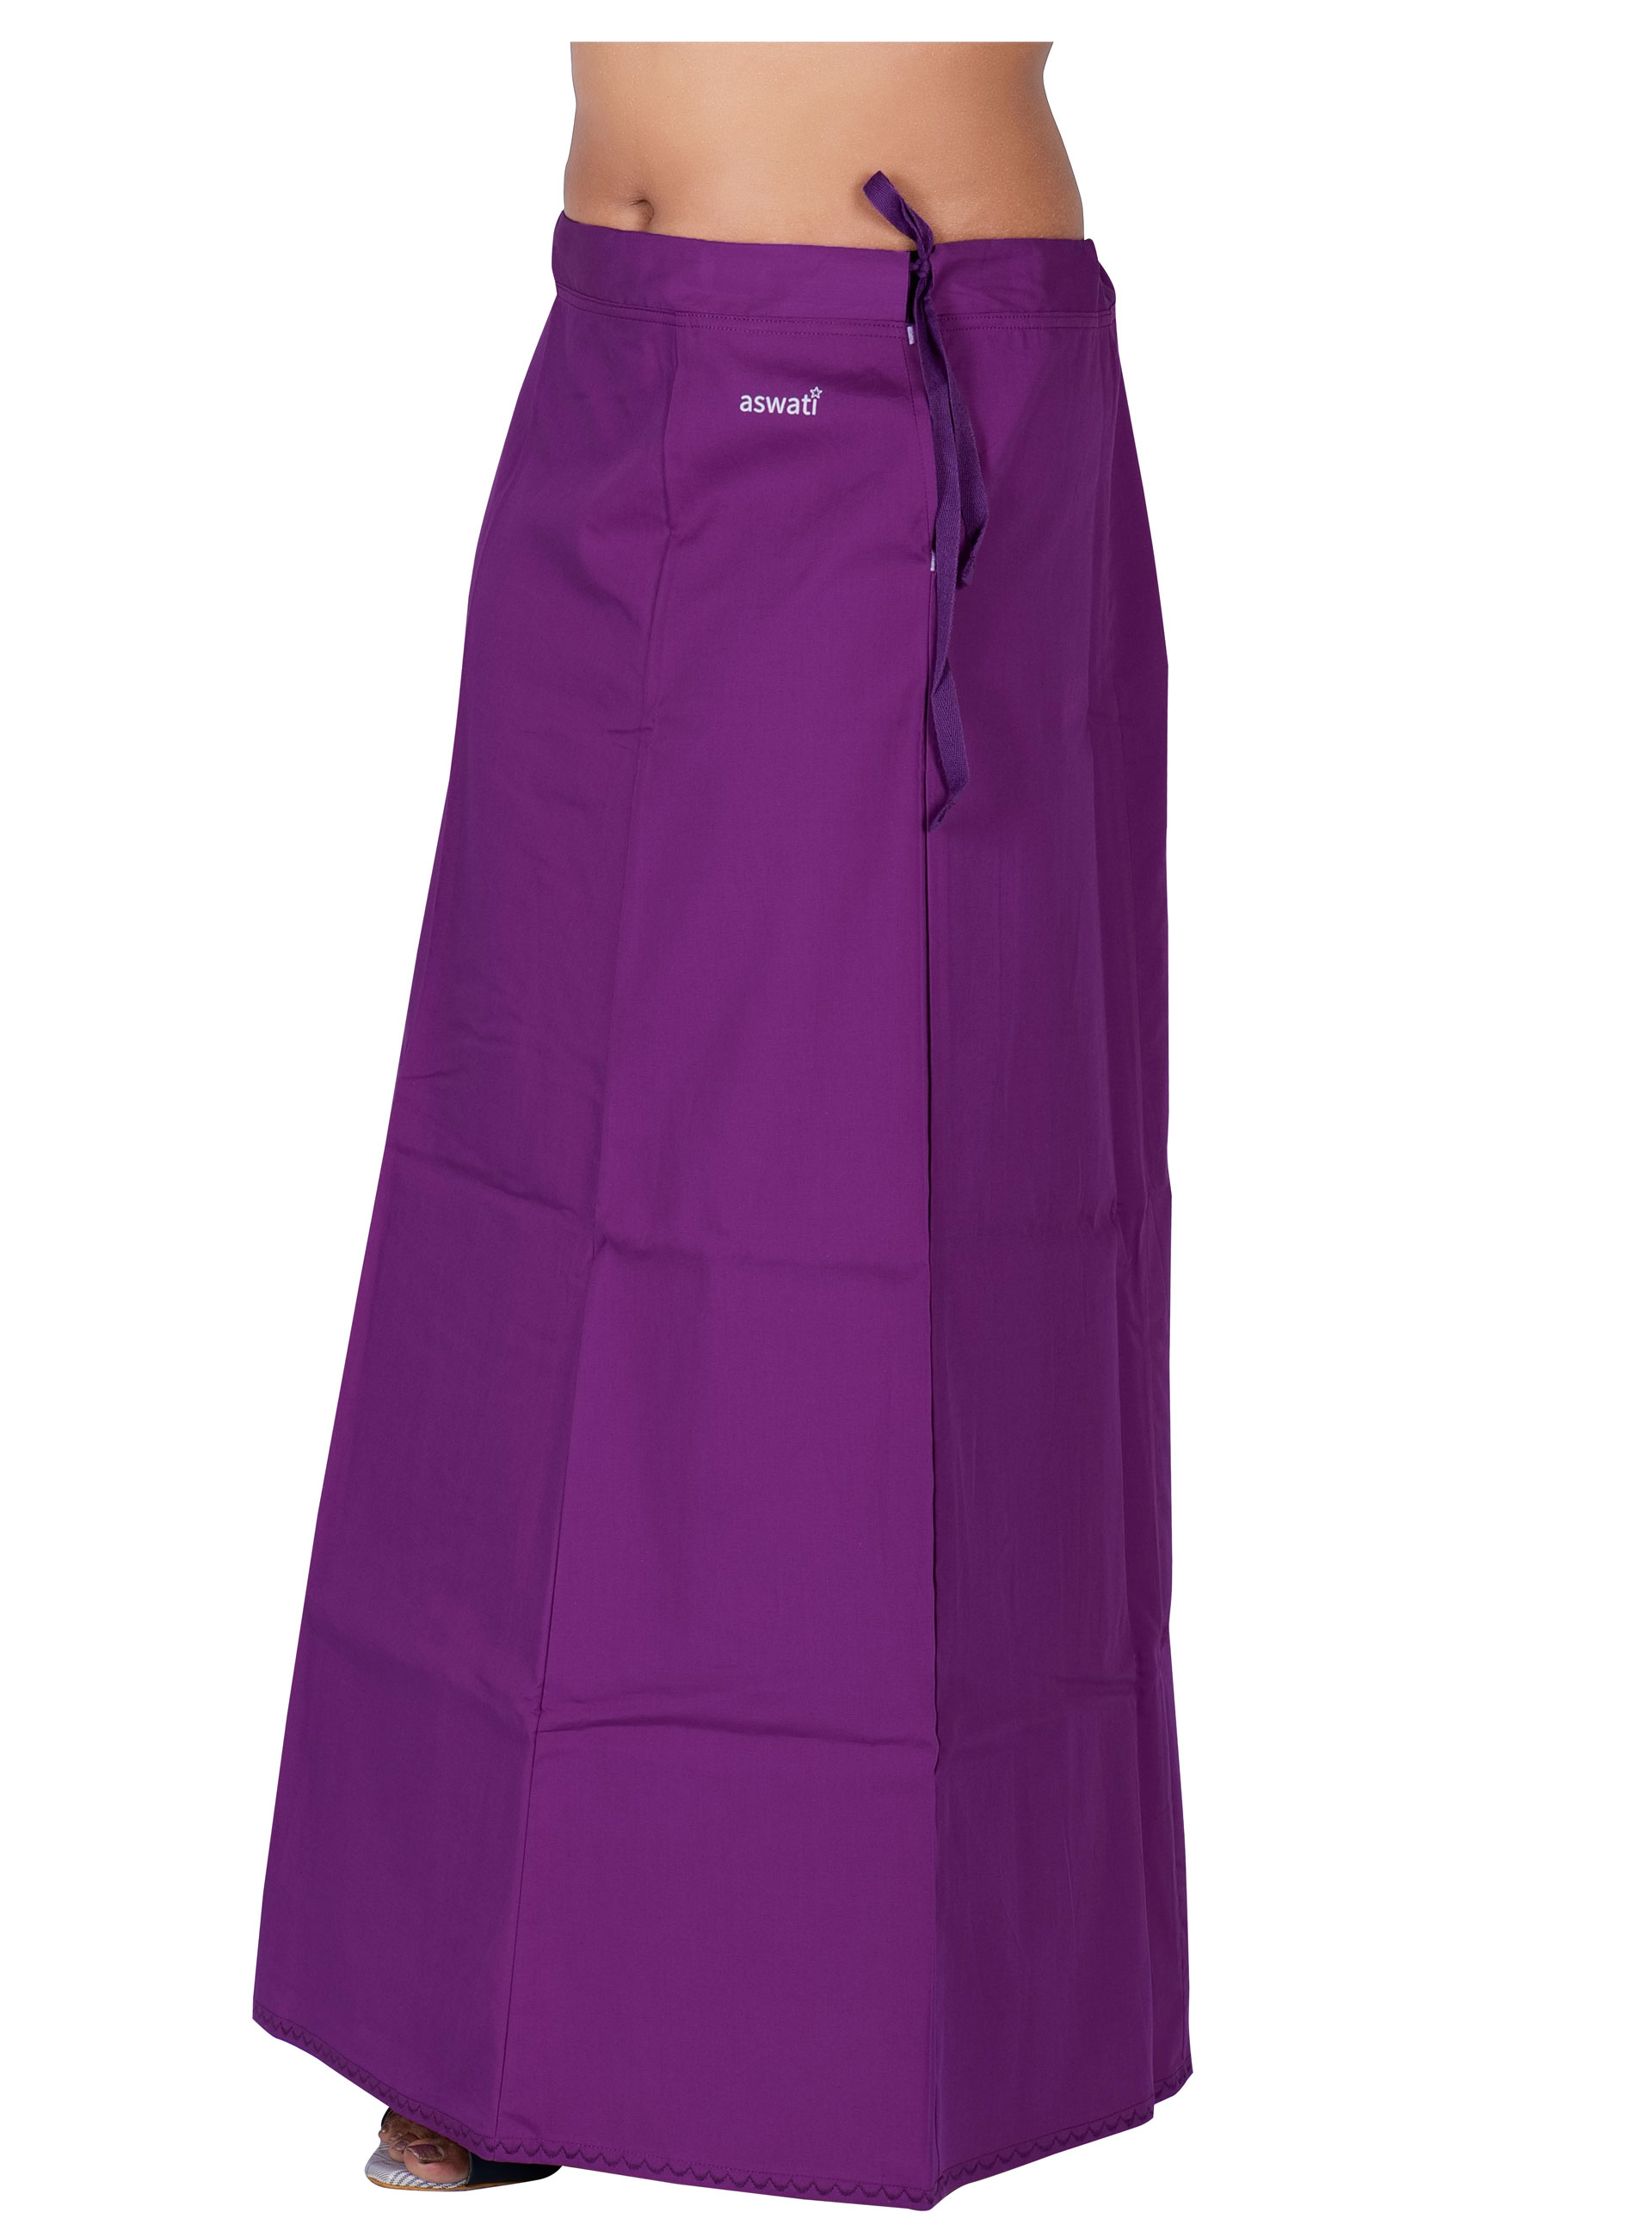 Purple - Aswati Premium Inskirt (8 PART)